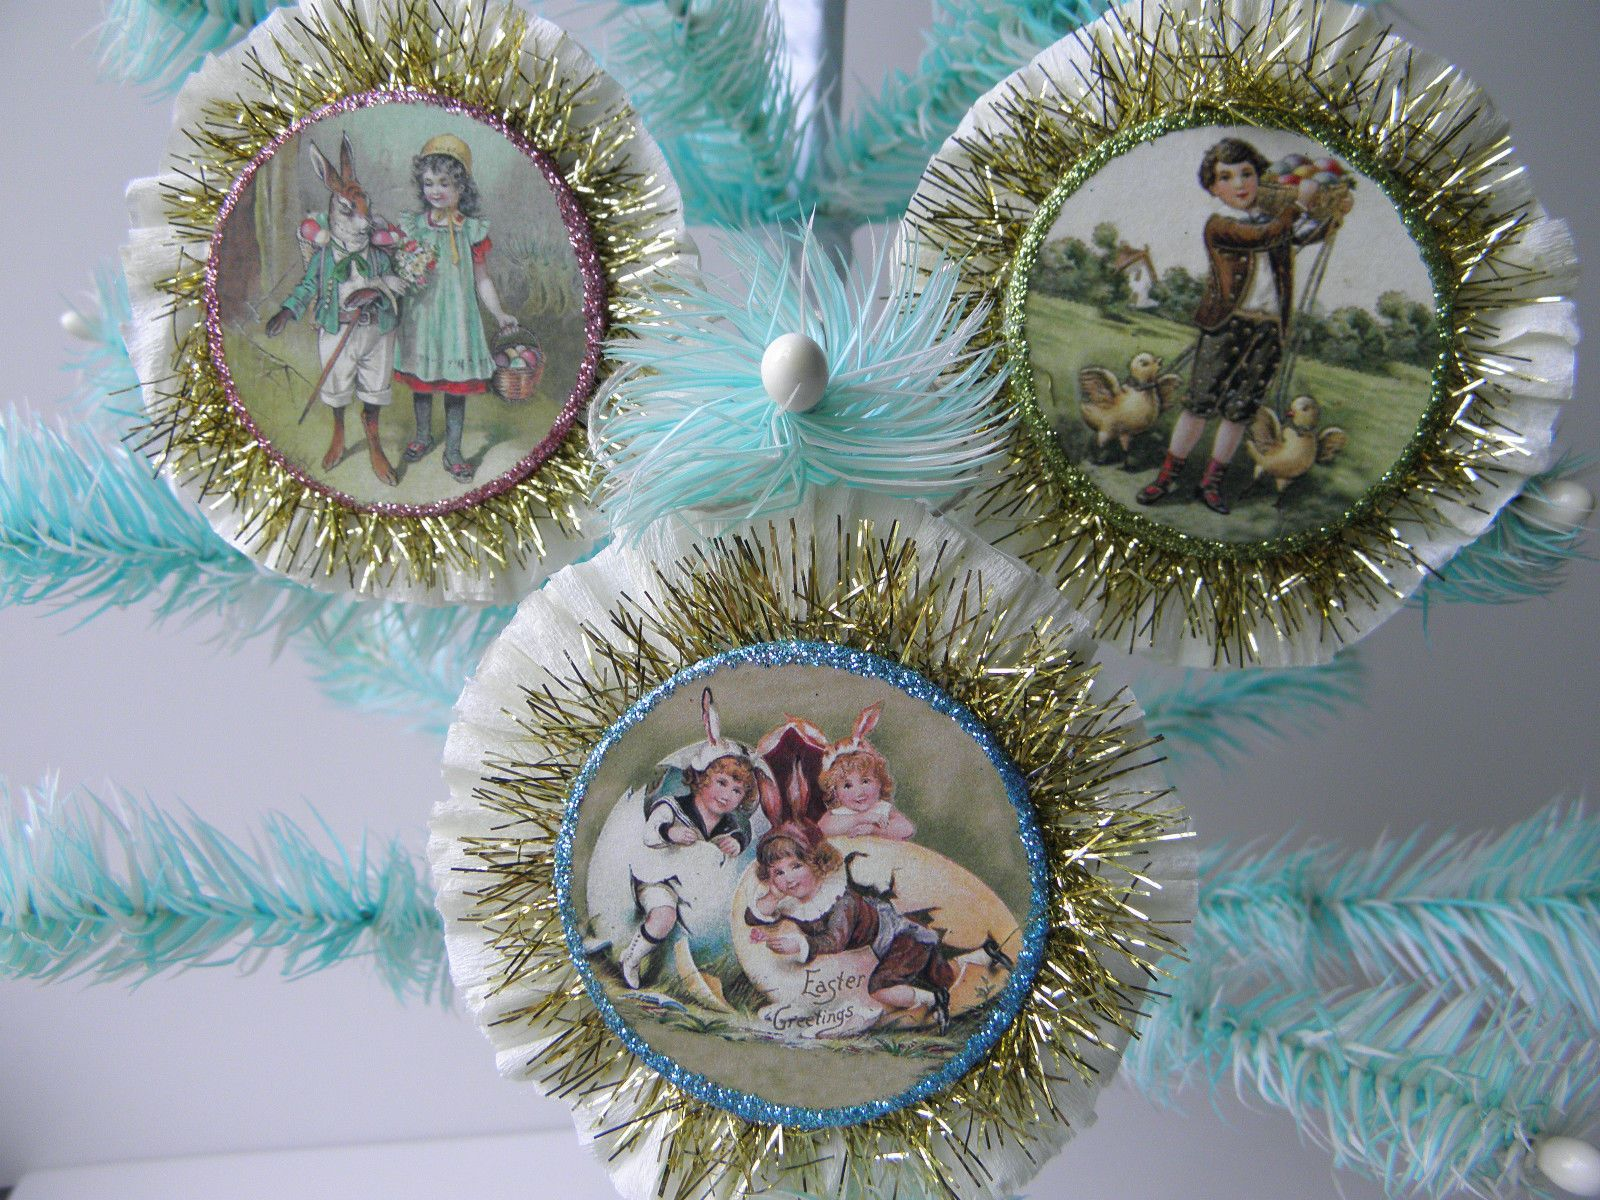 Bethany Lowe Easter Spring Feather Tree Ornament Crepe Rosette Set 3 | eBay